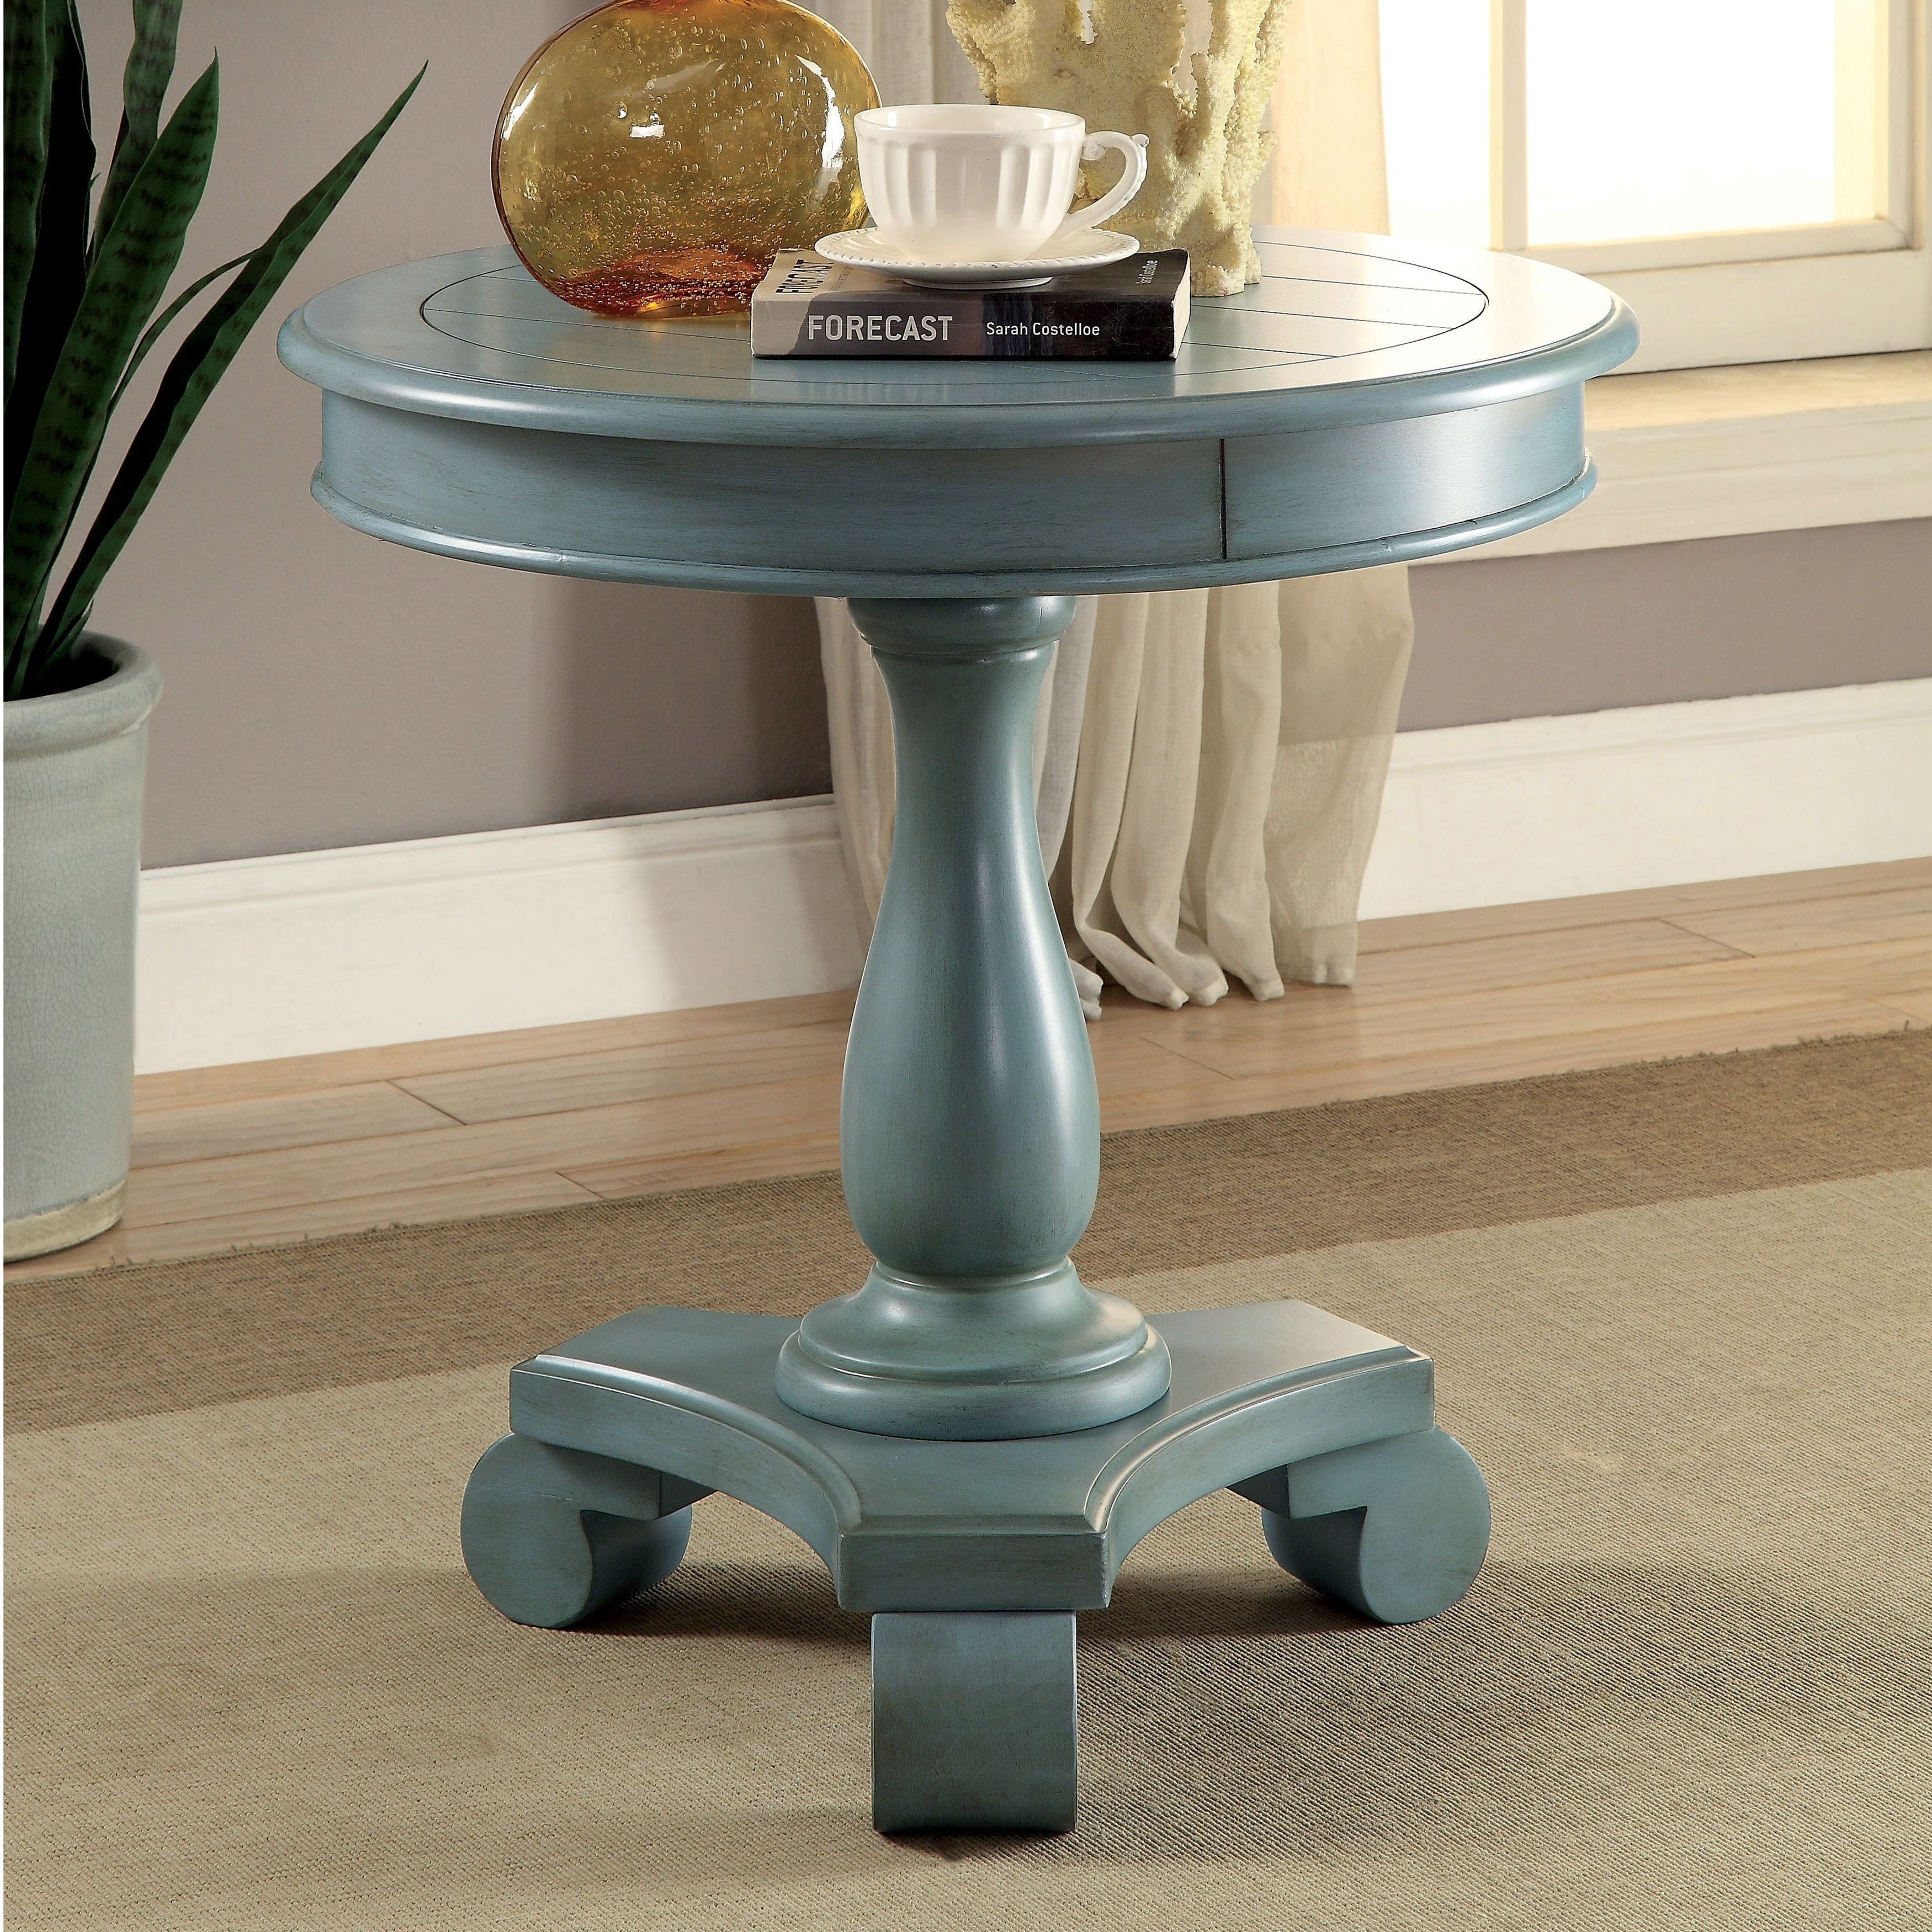 furniture america madelle traditional pedestal base round side teal blue accent table antique white drop leaf resin wicker counter height bar folding nic ikea storage small